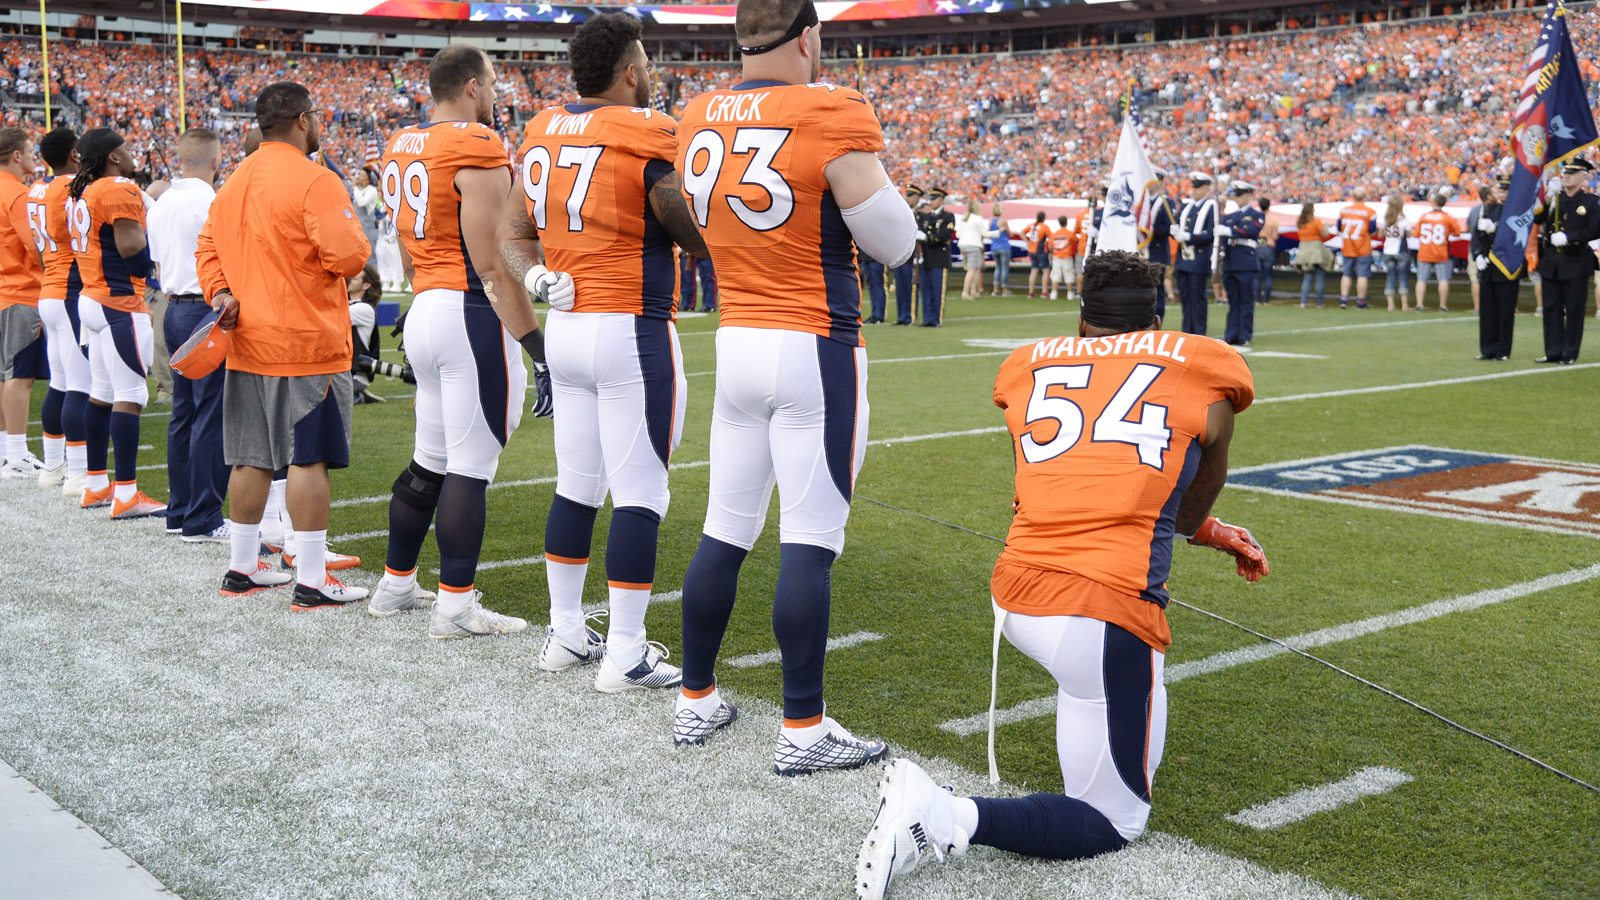 Linebacker Brandon Marshall of the Denver Broncos takes a knee during the national anthem. The Denver Broncos hosted the Carolina Panthers on Thursday, Sept. 8, 2016. (Photo by John Leyba/The Denver Post via Getty Images)